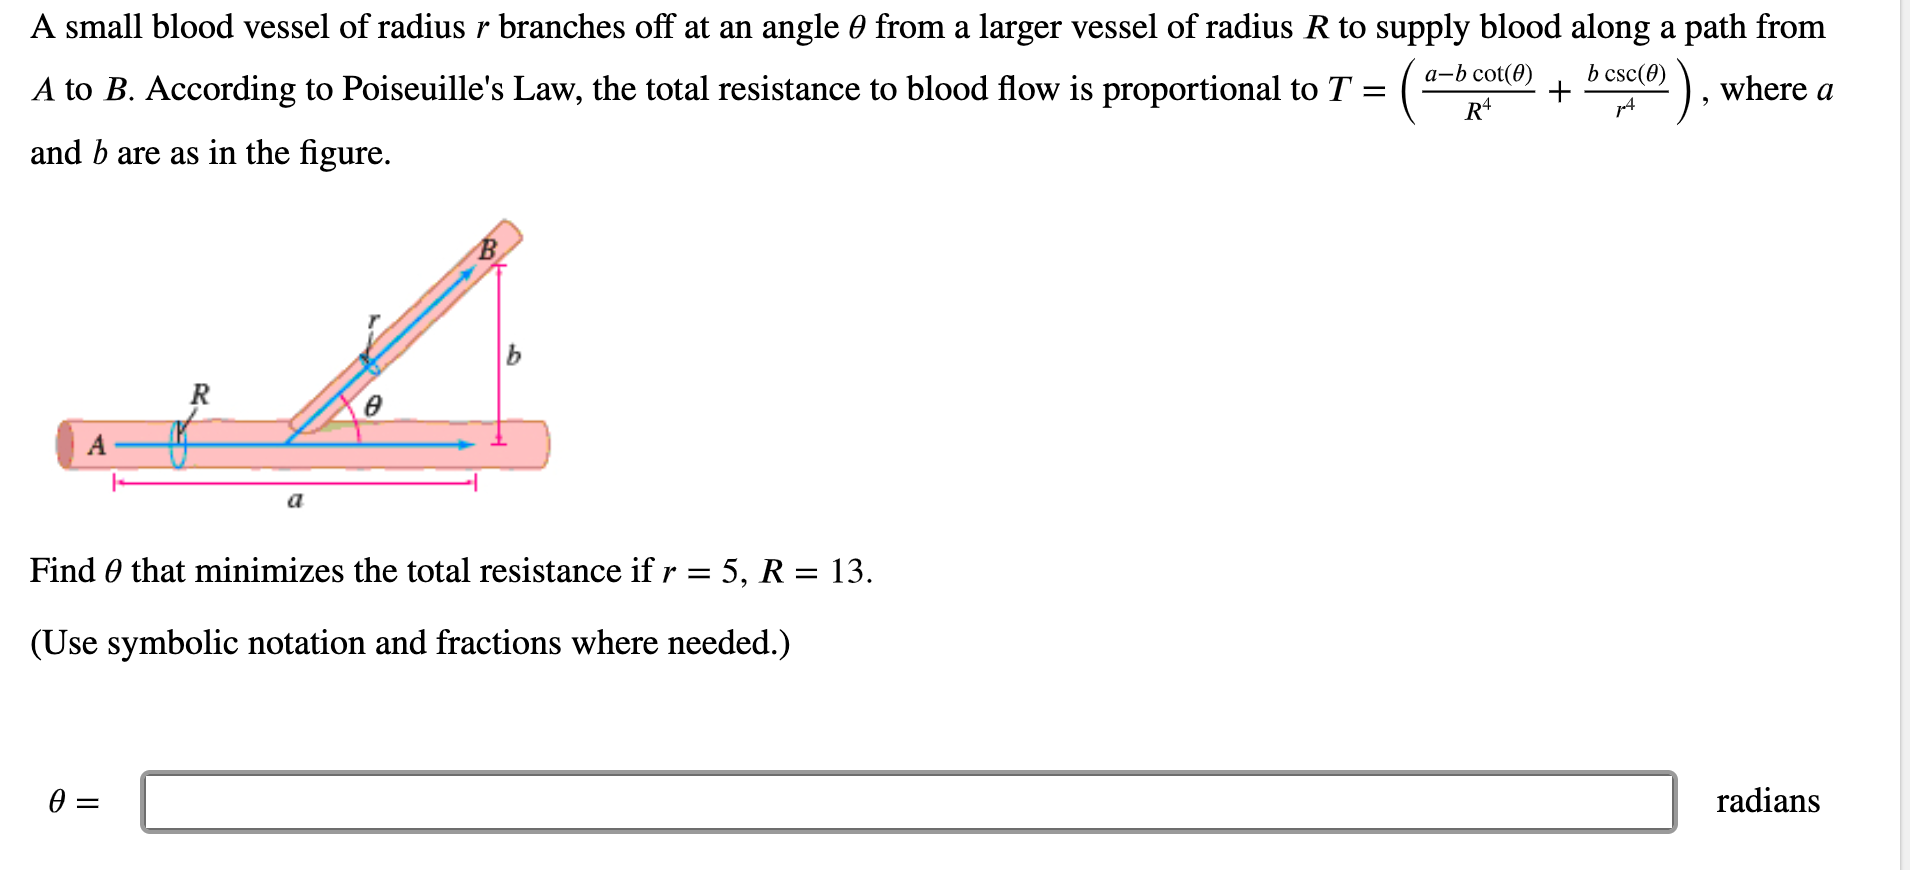 A small blood vessel of radius r branches off at an angle 0 from a larger vessel of radius R to supply blood along a path from а-b cot(0) b csc(0) A to B. According to Poiseuille's Law, the total resistance to blood flow is proportional to T = ( - where a and b are as in the figure. В. ь R Find 0 that minimizes the total resistance if r = 5, R = 13. (Use symbolic notation and fractions where needed.) radians